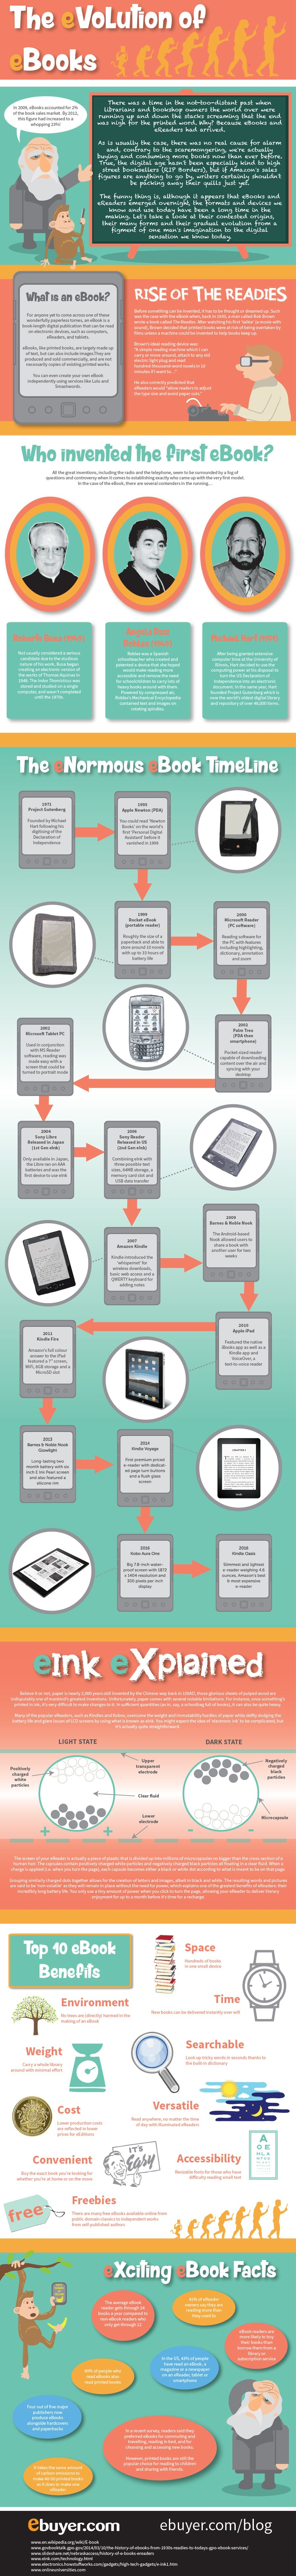 The Evolution of eBooks Infographic